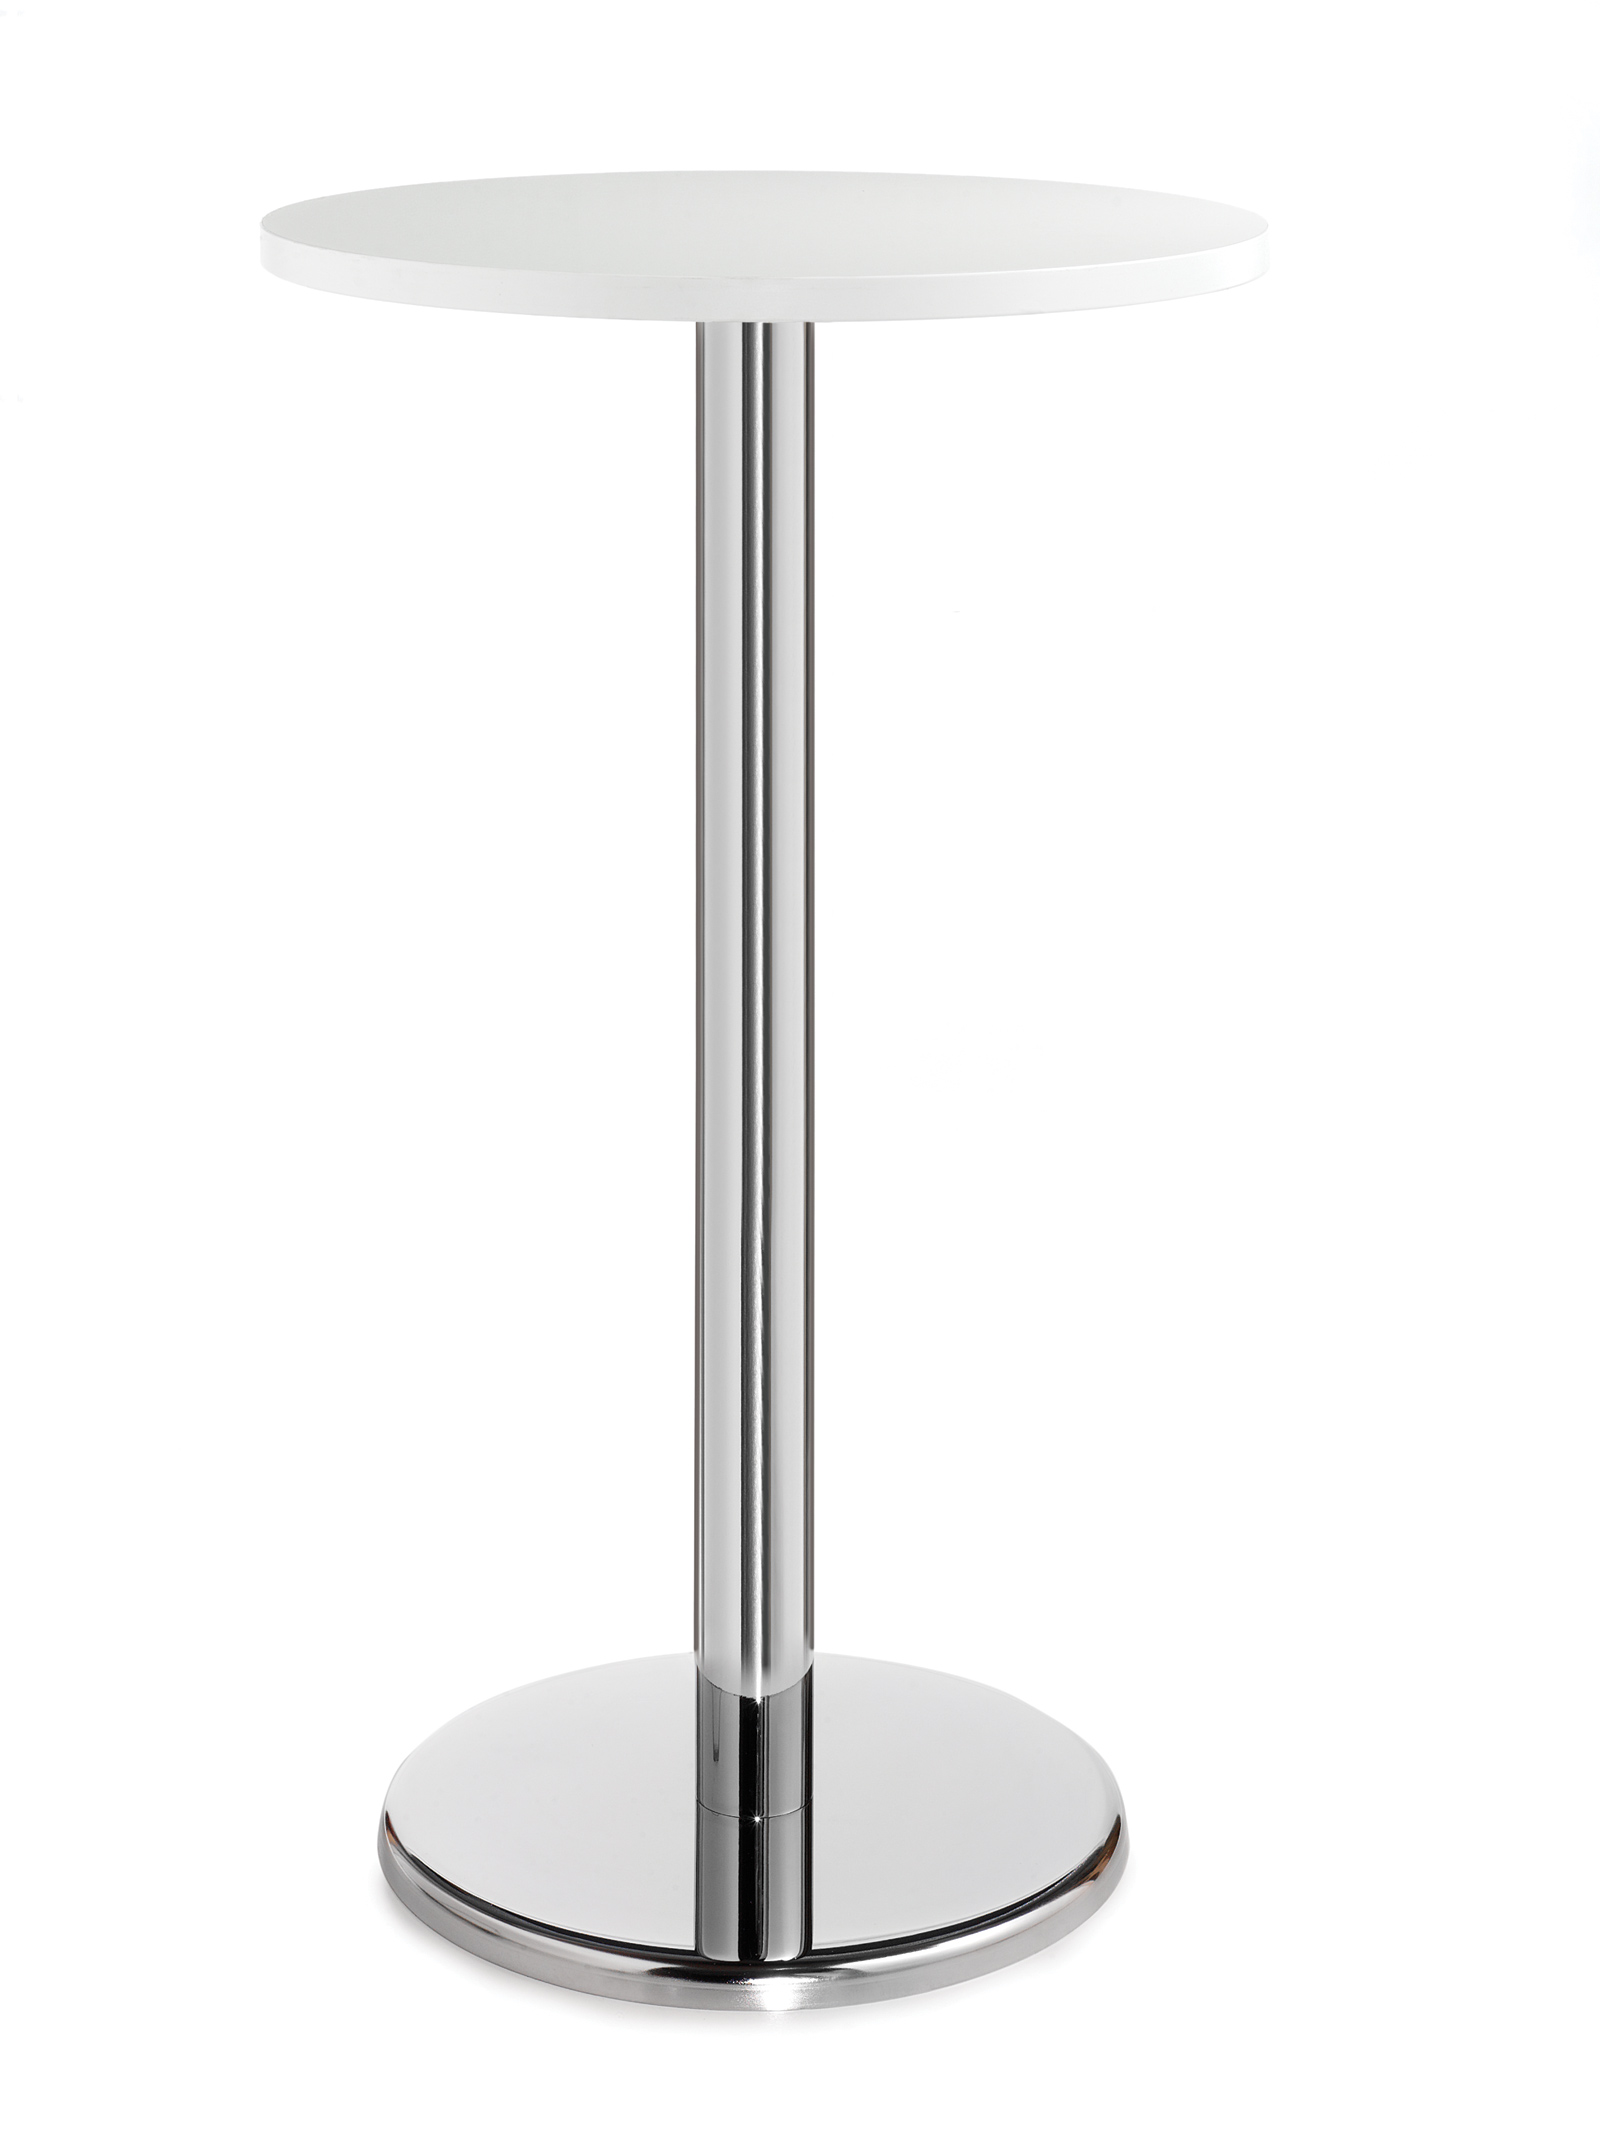 Pisa 800mm Diameter Round Poser Table White And Chrome. Width 800mm; Depth  800mm; Height 1110mm. 25mm MFC White Top With Chrome Column And Base Plate.